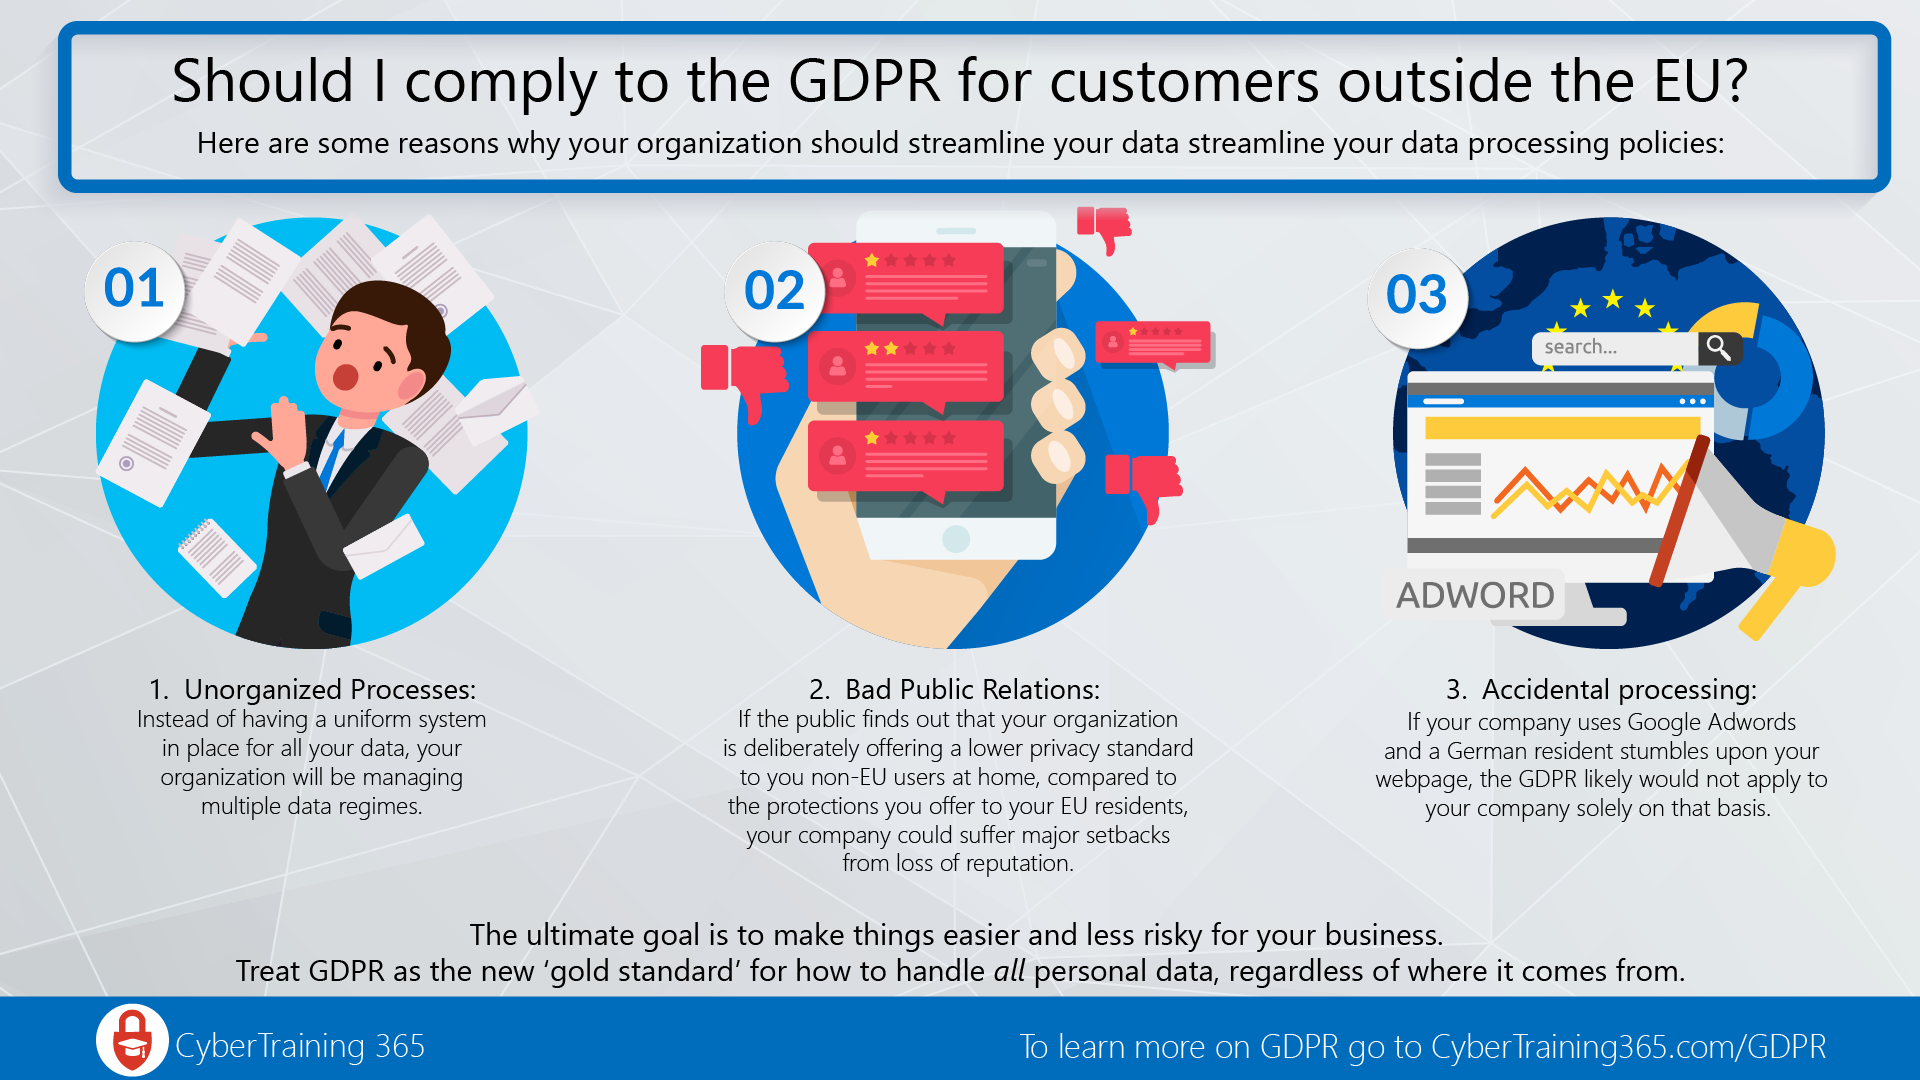 comply to the GDPR